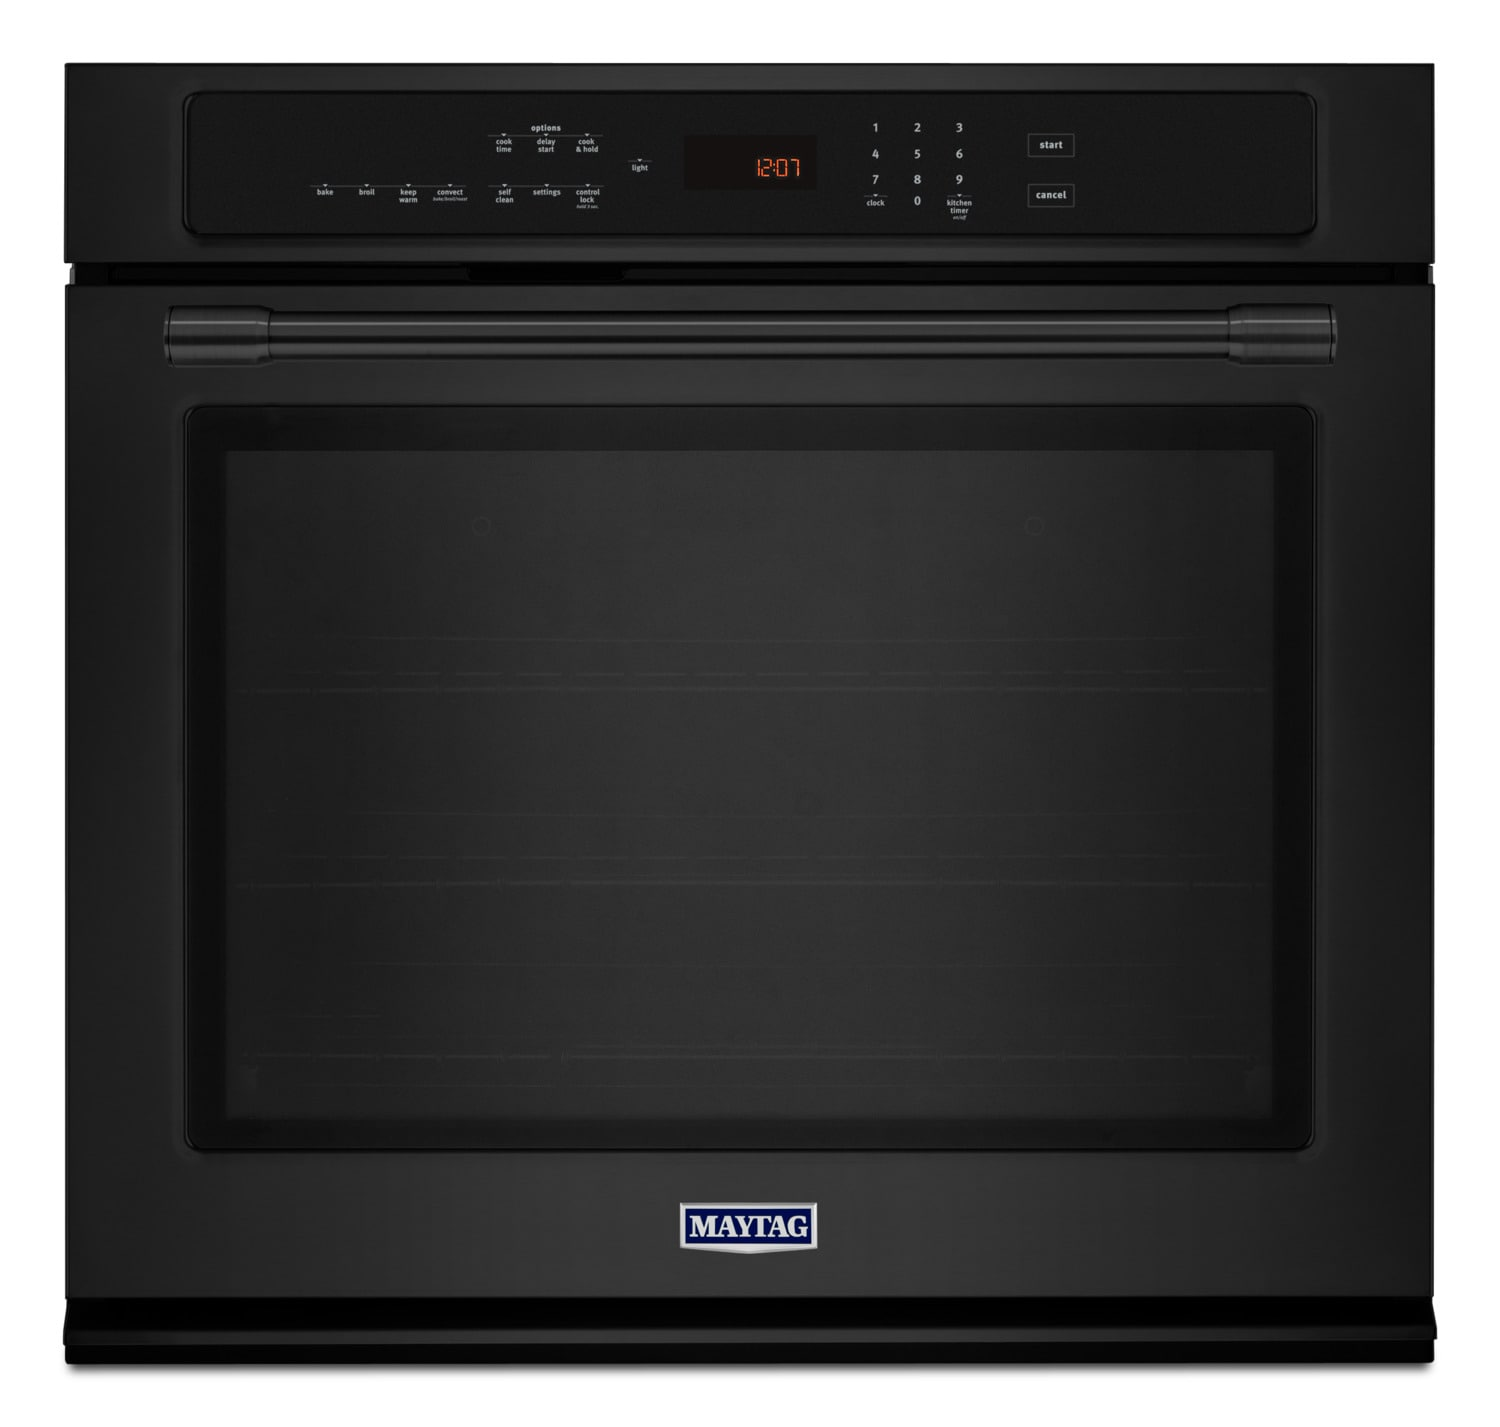 Maytag Black Electric Convection Oven (5.0 Cu. Ft.) - MEW9530FB